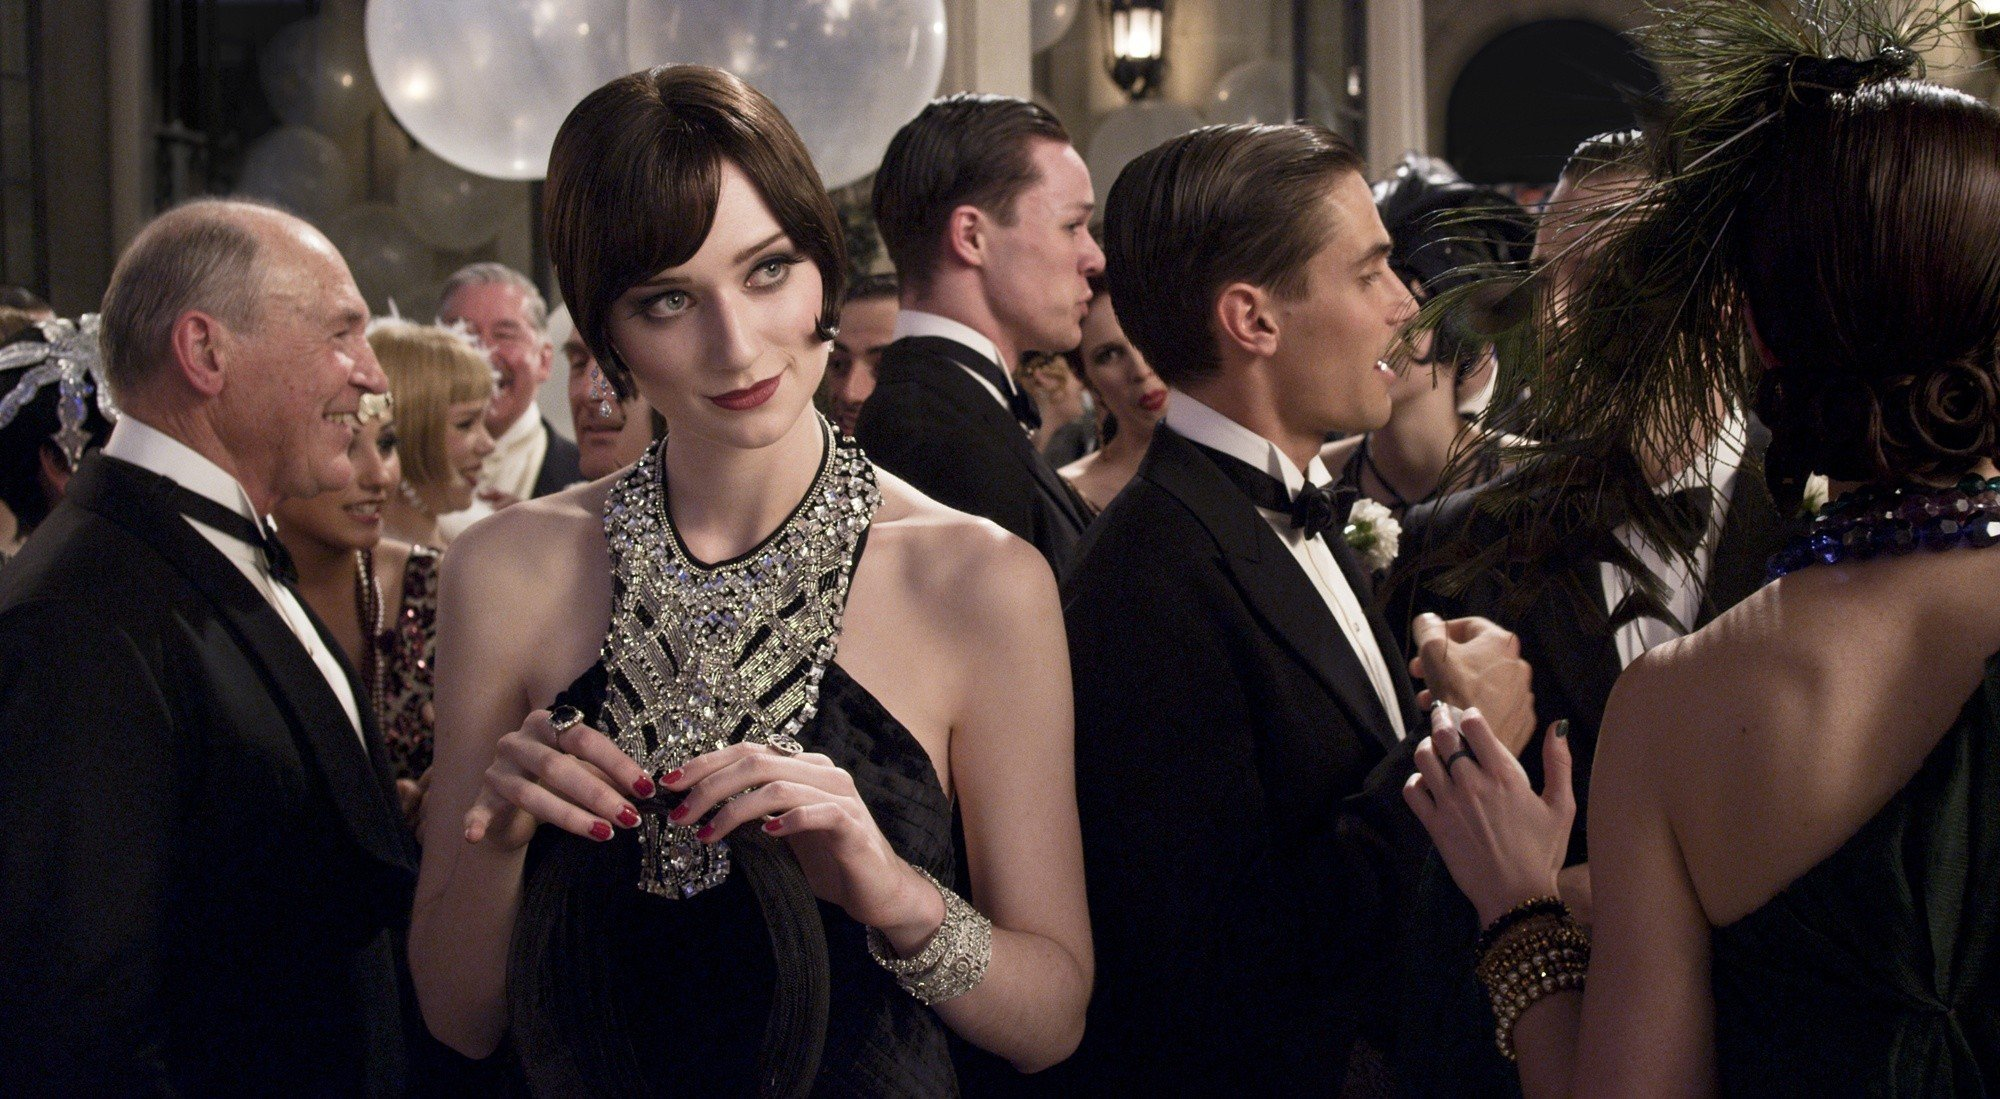 Were nick and jordan hookup in the great gatsby